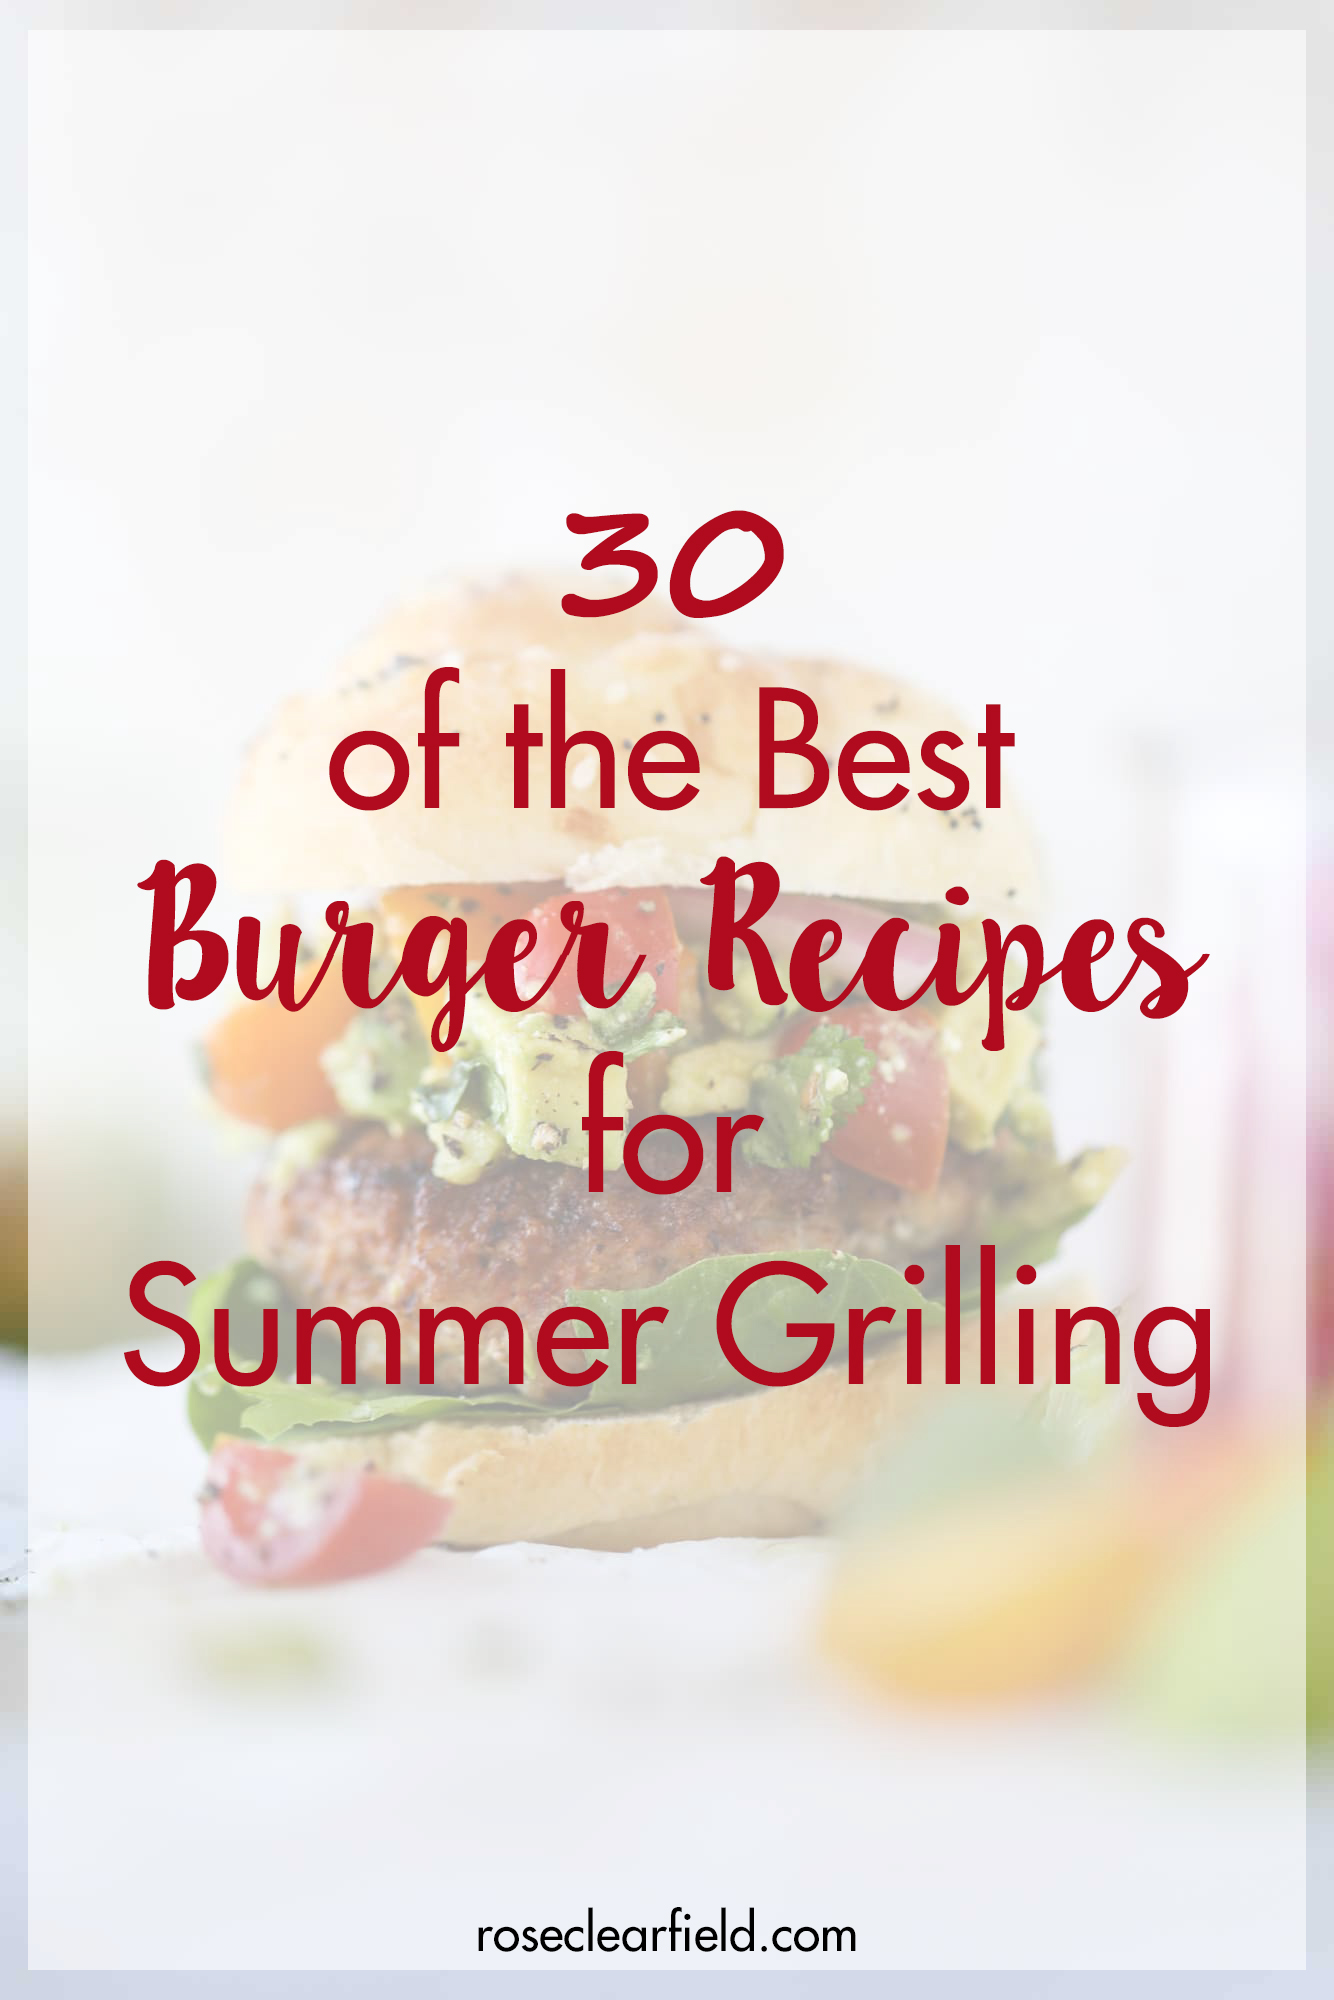 30 of the best burger recipes for summer grilling. Keep your family eating flavorful, delicious burgers all summer long! #bestburgers #burgerrecipes #grilling | https://www.roseclearfield.com